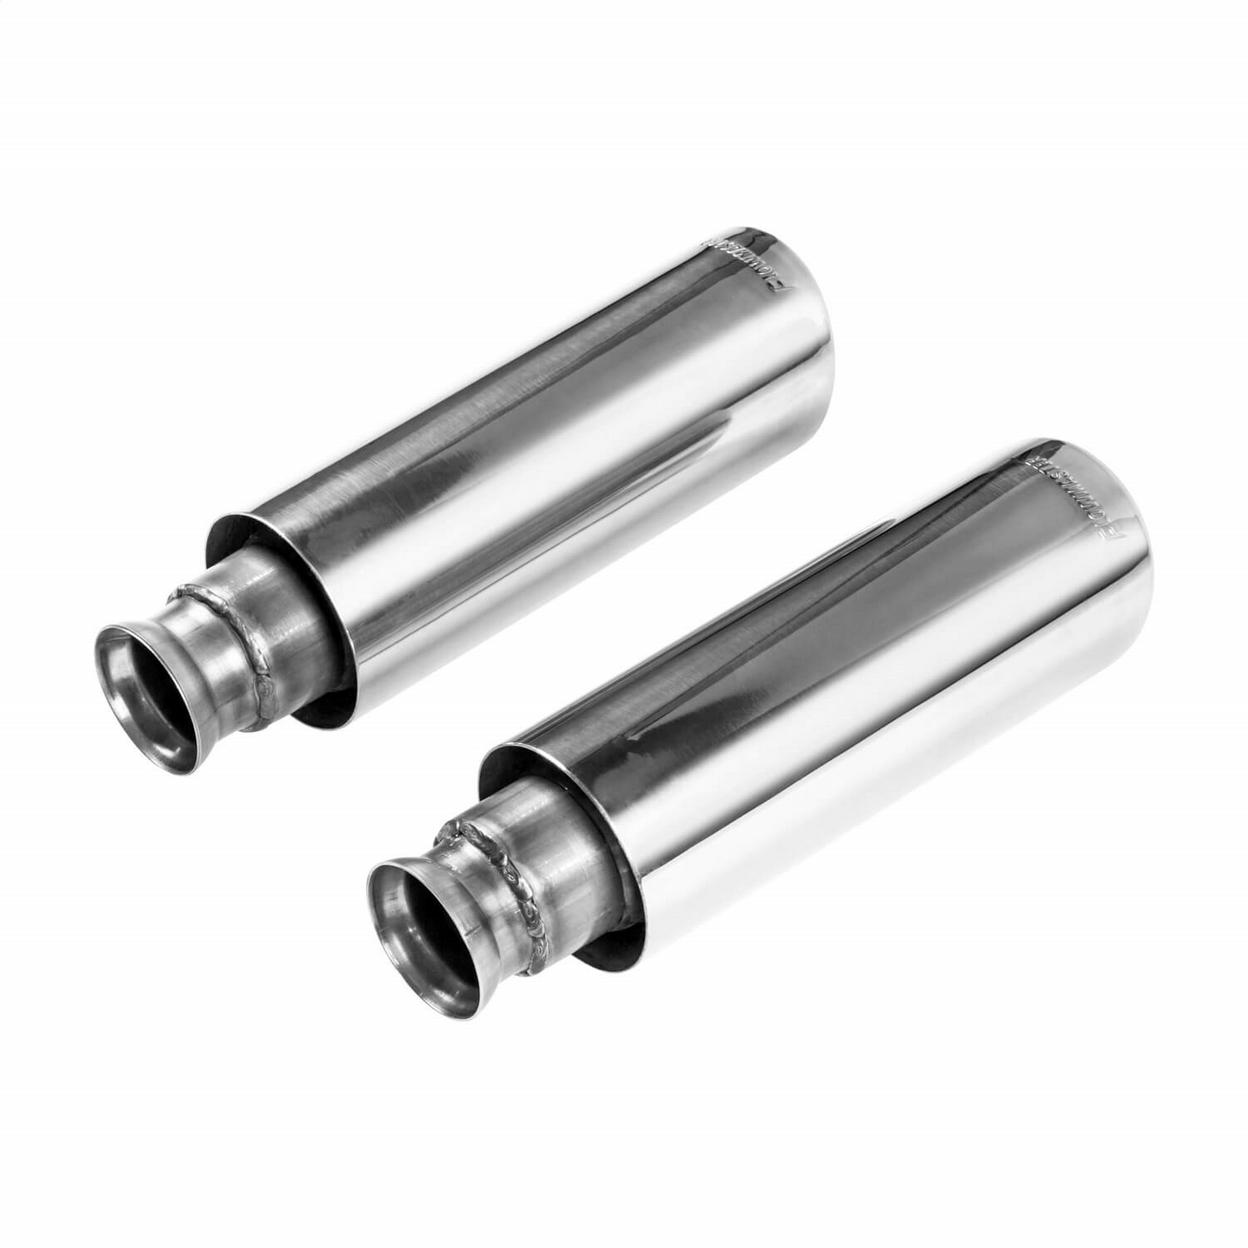 Exhaust Tip - 4.00 in. Angle Cut Polished SS - Clamp-On